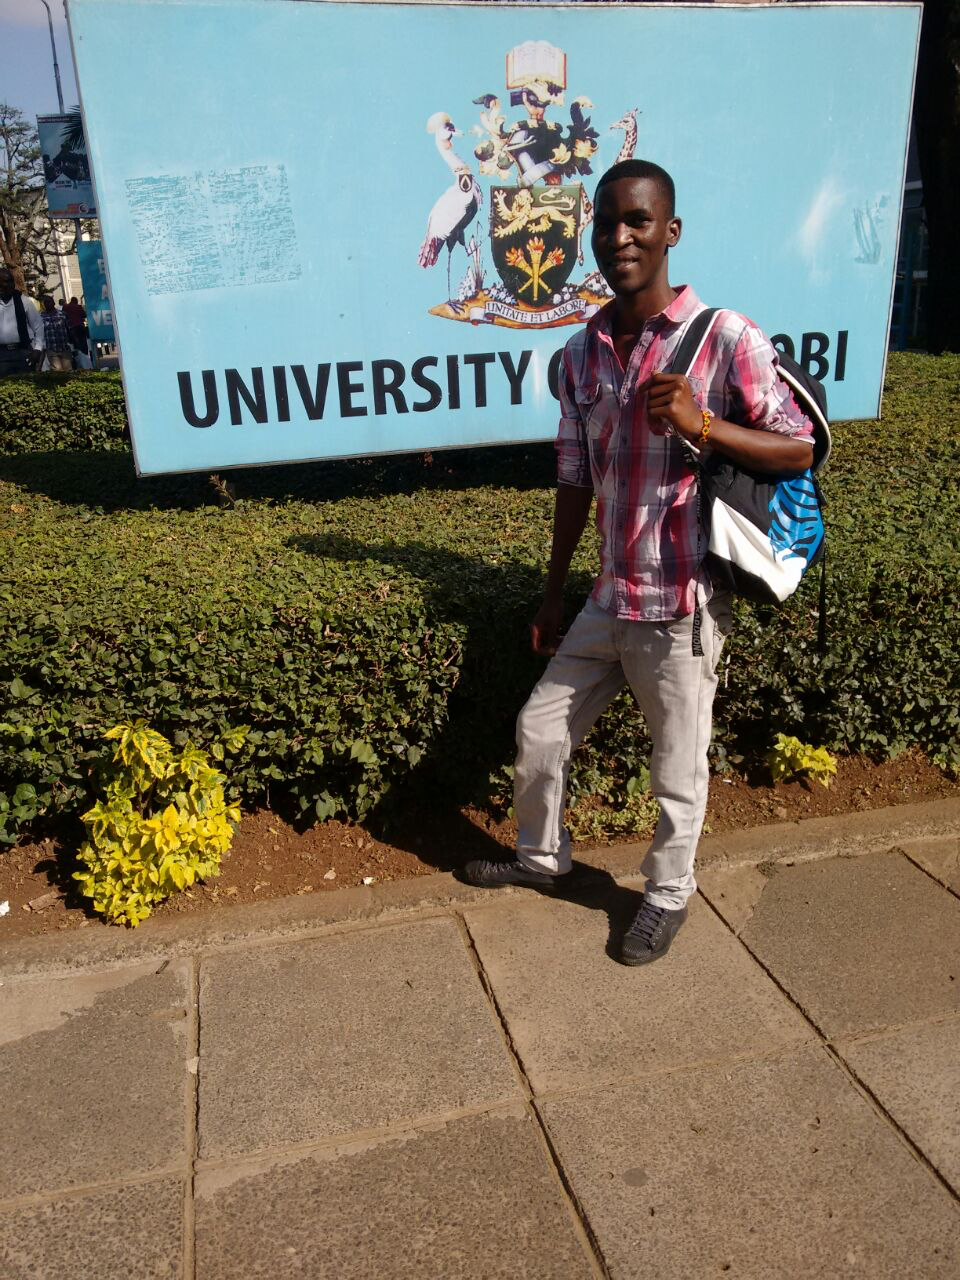 Starting out - Emmanuel starts his University journey